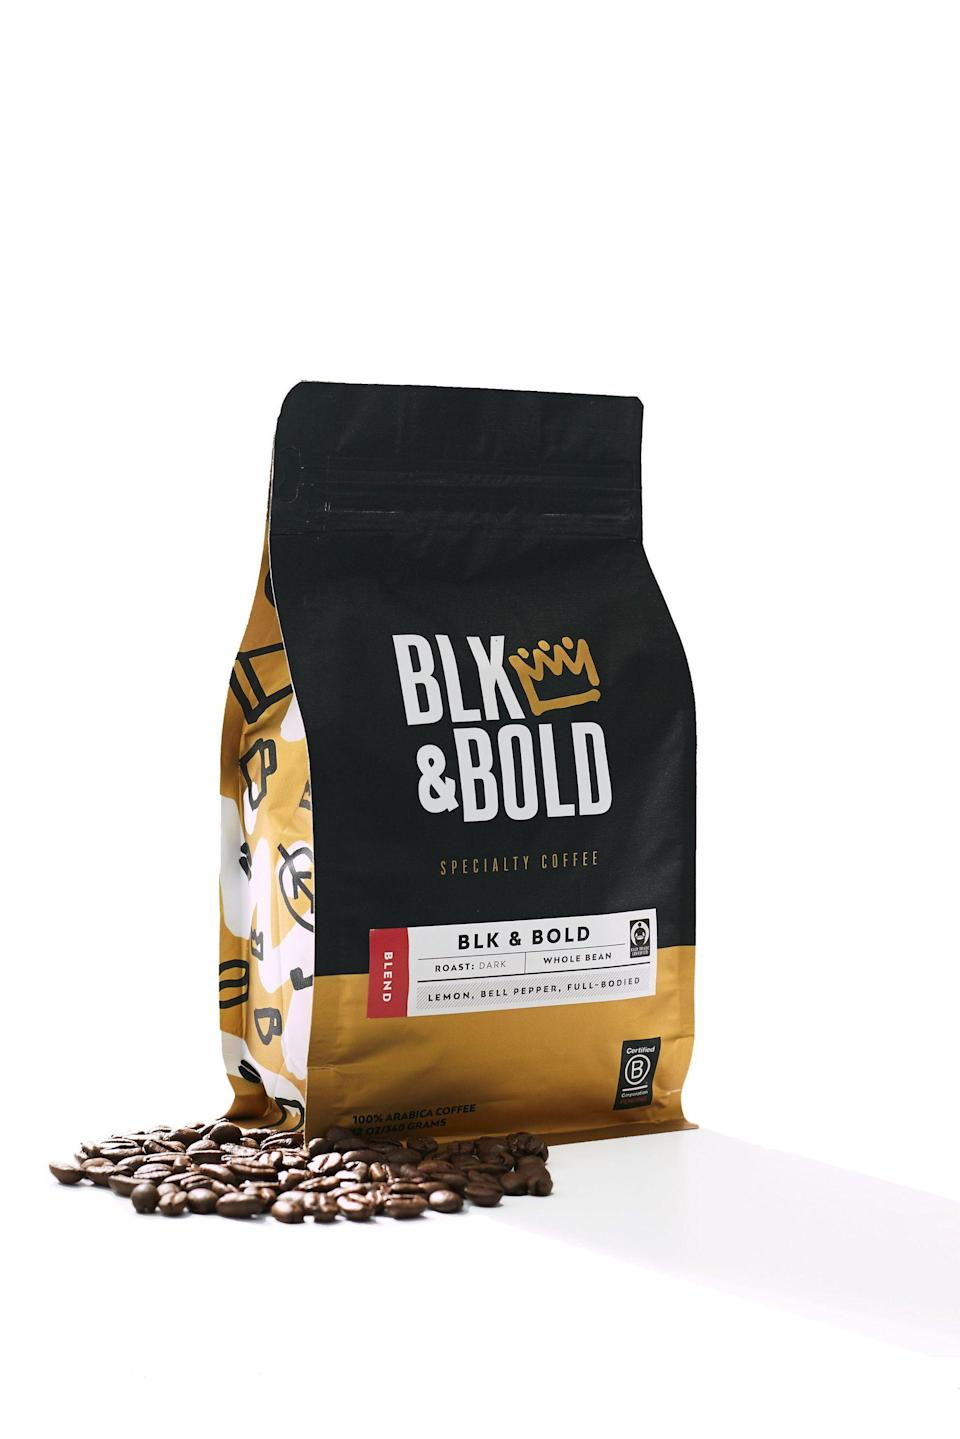 """<p>blkandbold.com</p><p><strong>$14.00</strong></p><p><a href=""""https://blkandbold.com/collections/fair-trade-specialty-coffees/products/blk-bold-sumatra-blend"""" rel=""""nofollow noopener"""" target=""""_blank"""" data-ylk=""""slk:Shop Now"""" class=""""link rapid-noclick-resp"""">Shop Now</a></p><p>Your step dad will love trying a new coffee brand. This blend is great for homemade espresso. </p>"""